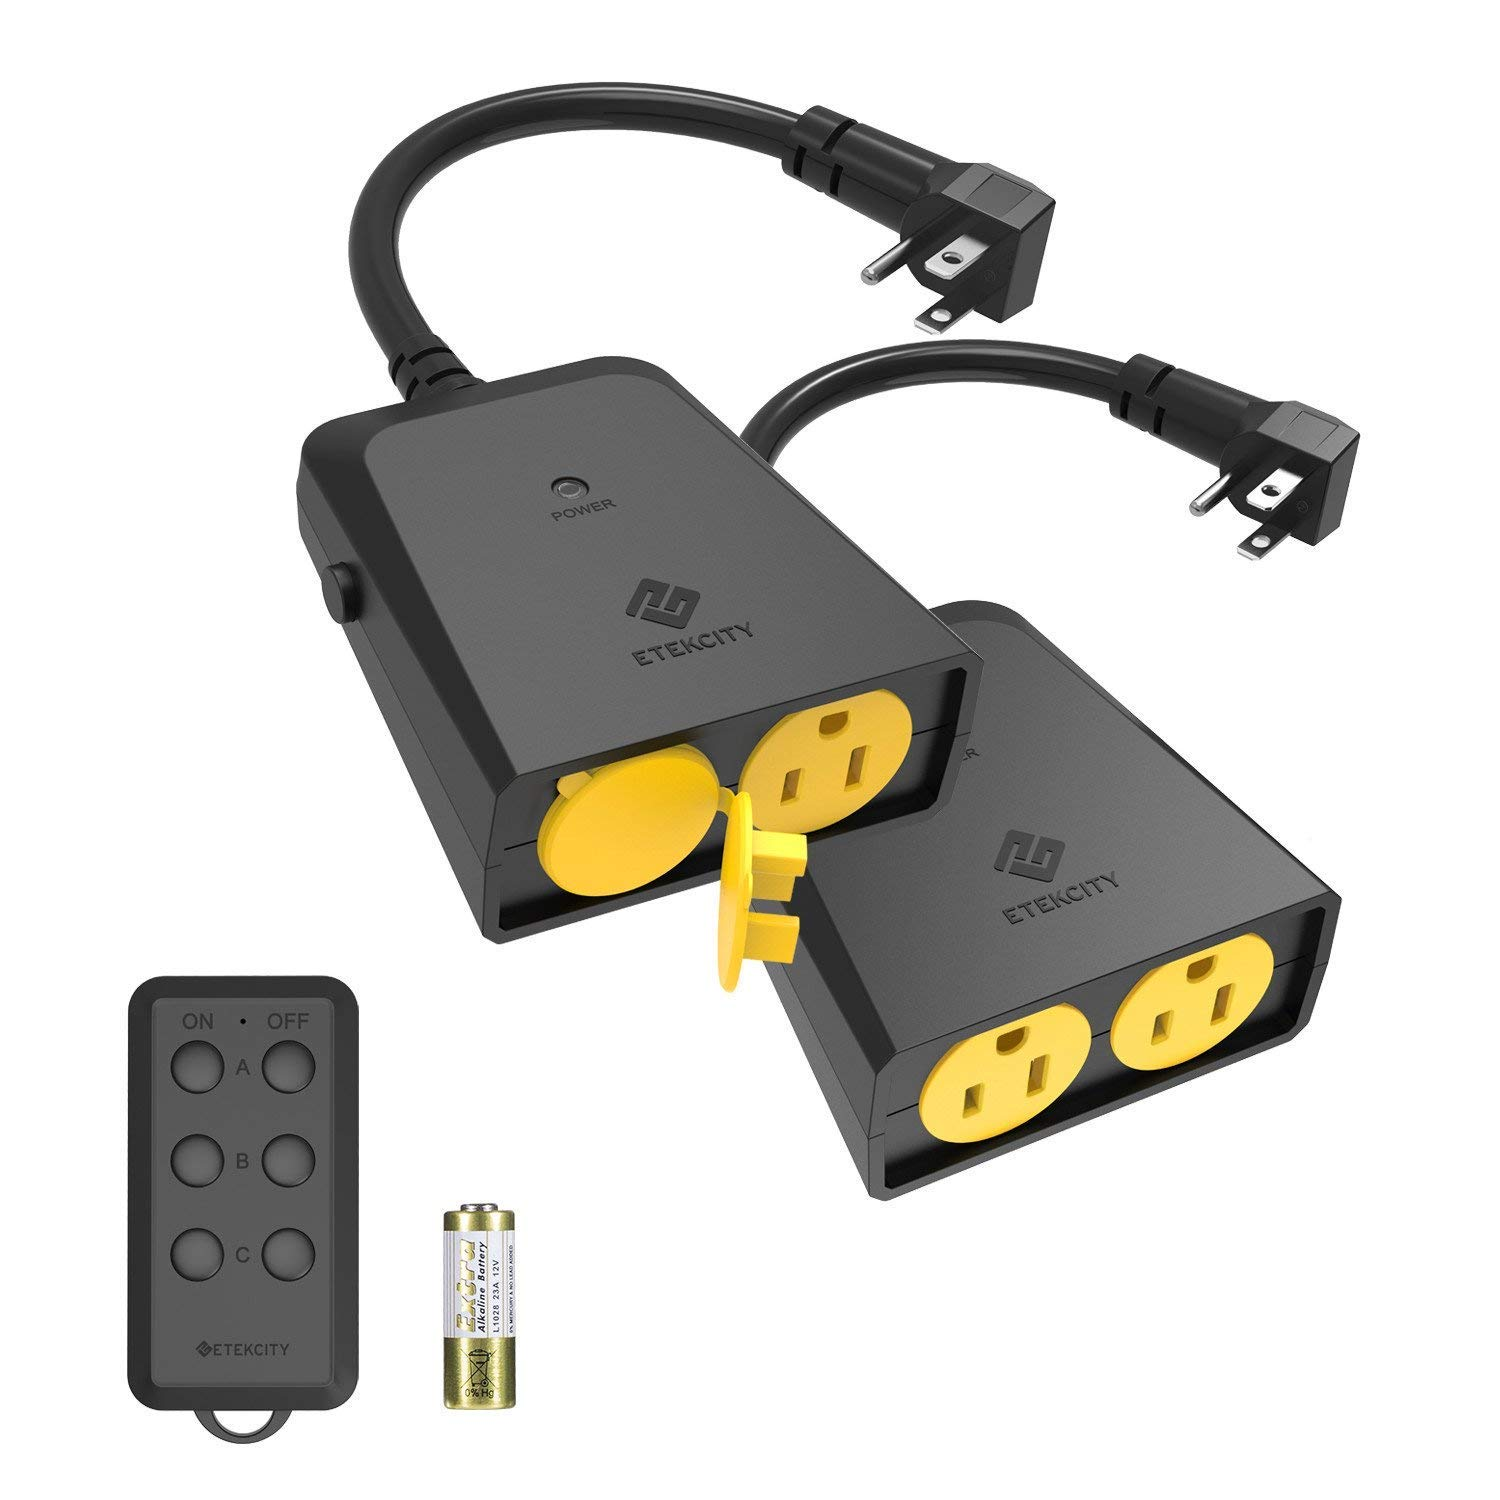 Etekcity ZAP 1FX Wireless Outdoor Remote Control Outlet, Weatherproof, 150ft Range Electrical Light Switch, Dual Outlet, Pair Freely, FCC ETL Certified, Black (2 Pack)